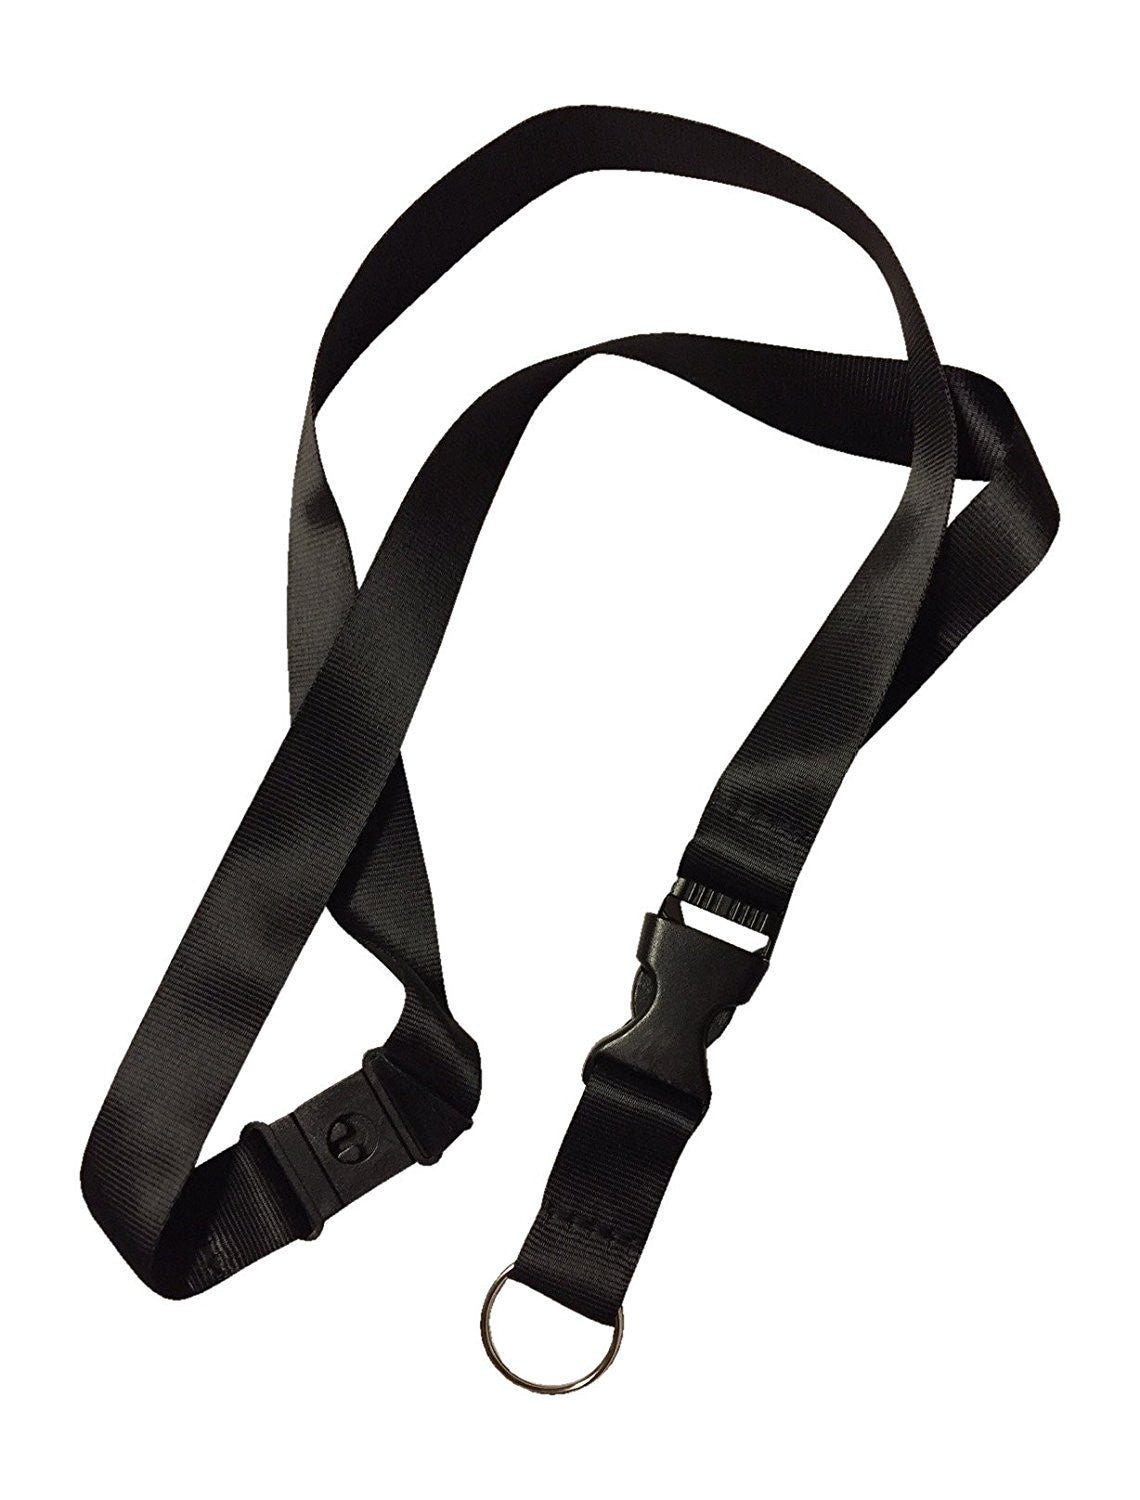 5 pcs Black anti choke Lanyard perfect for ID Badge Holders Features Strangle Proof Release Buckle